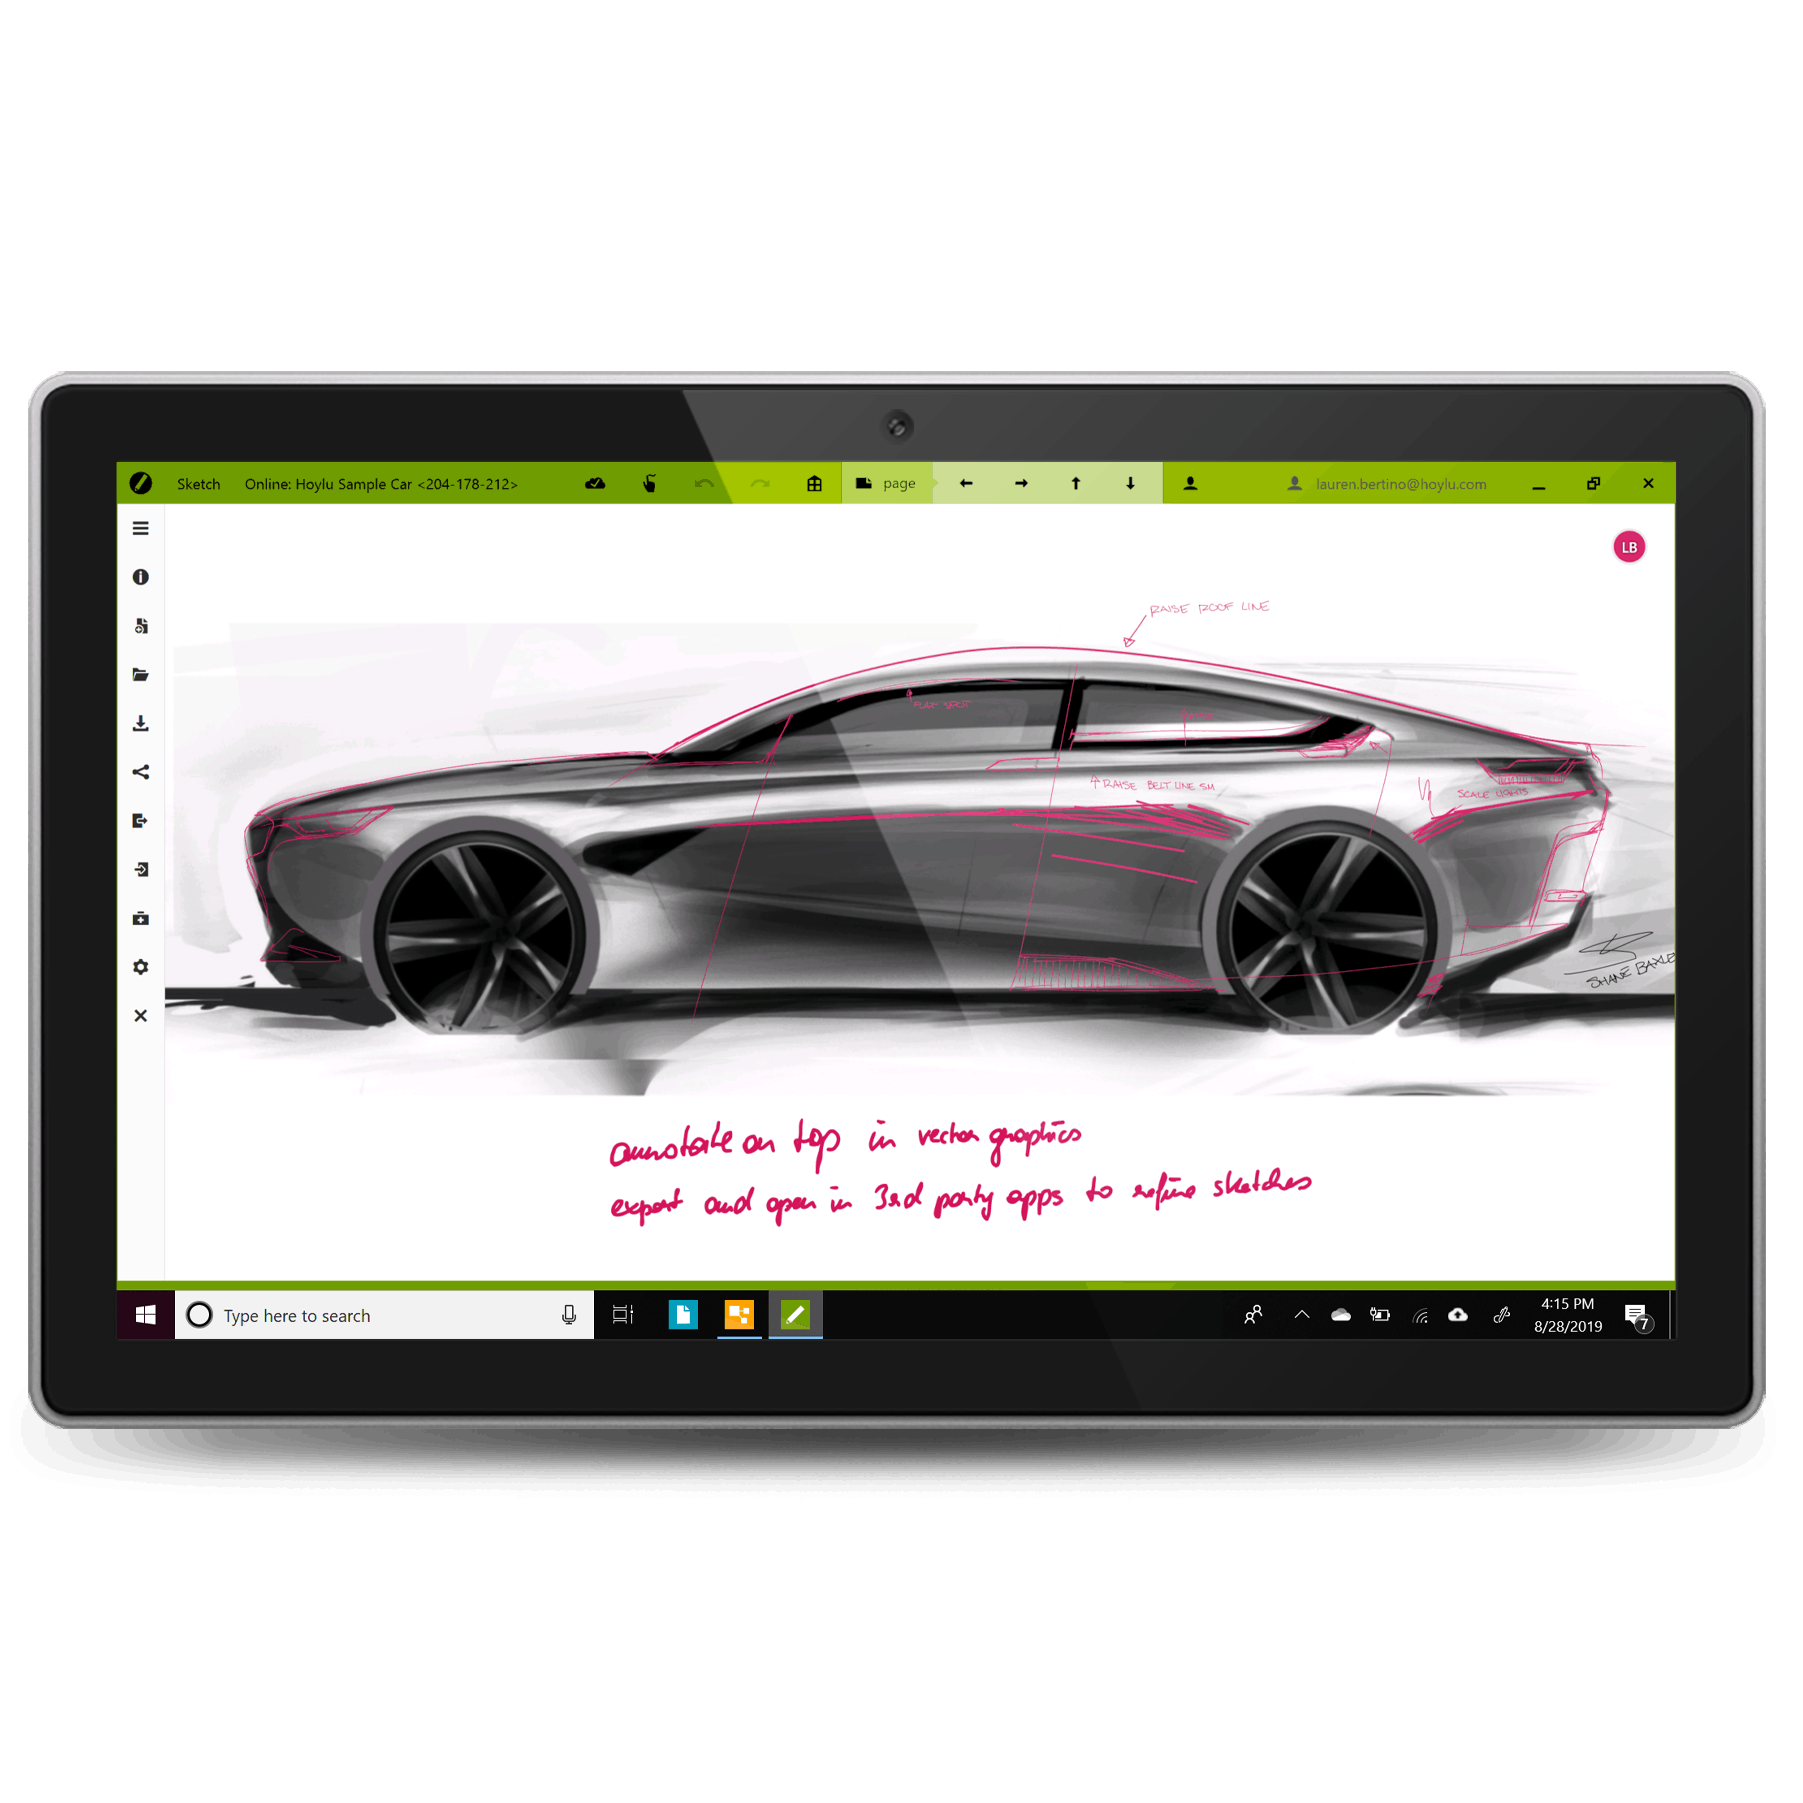 A drawing of a car made on Hoylu Sketch software